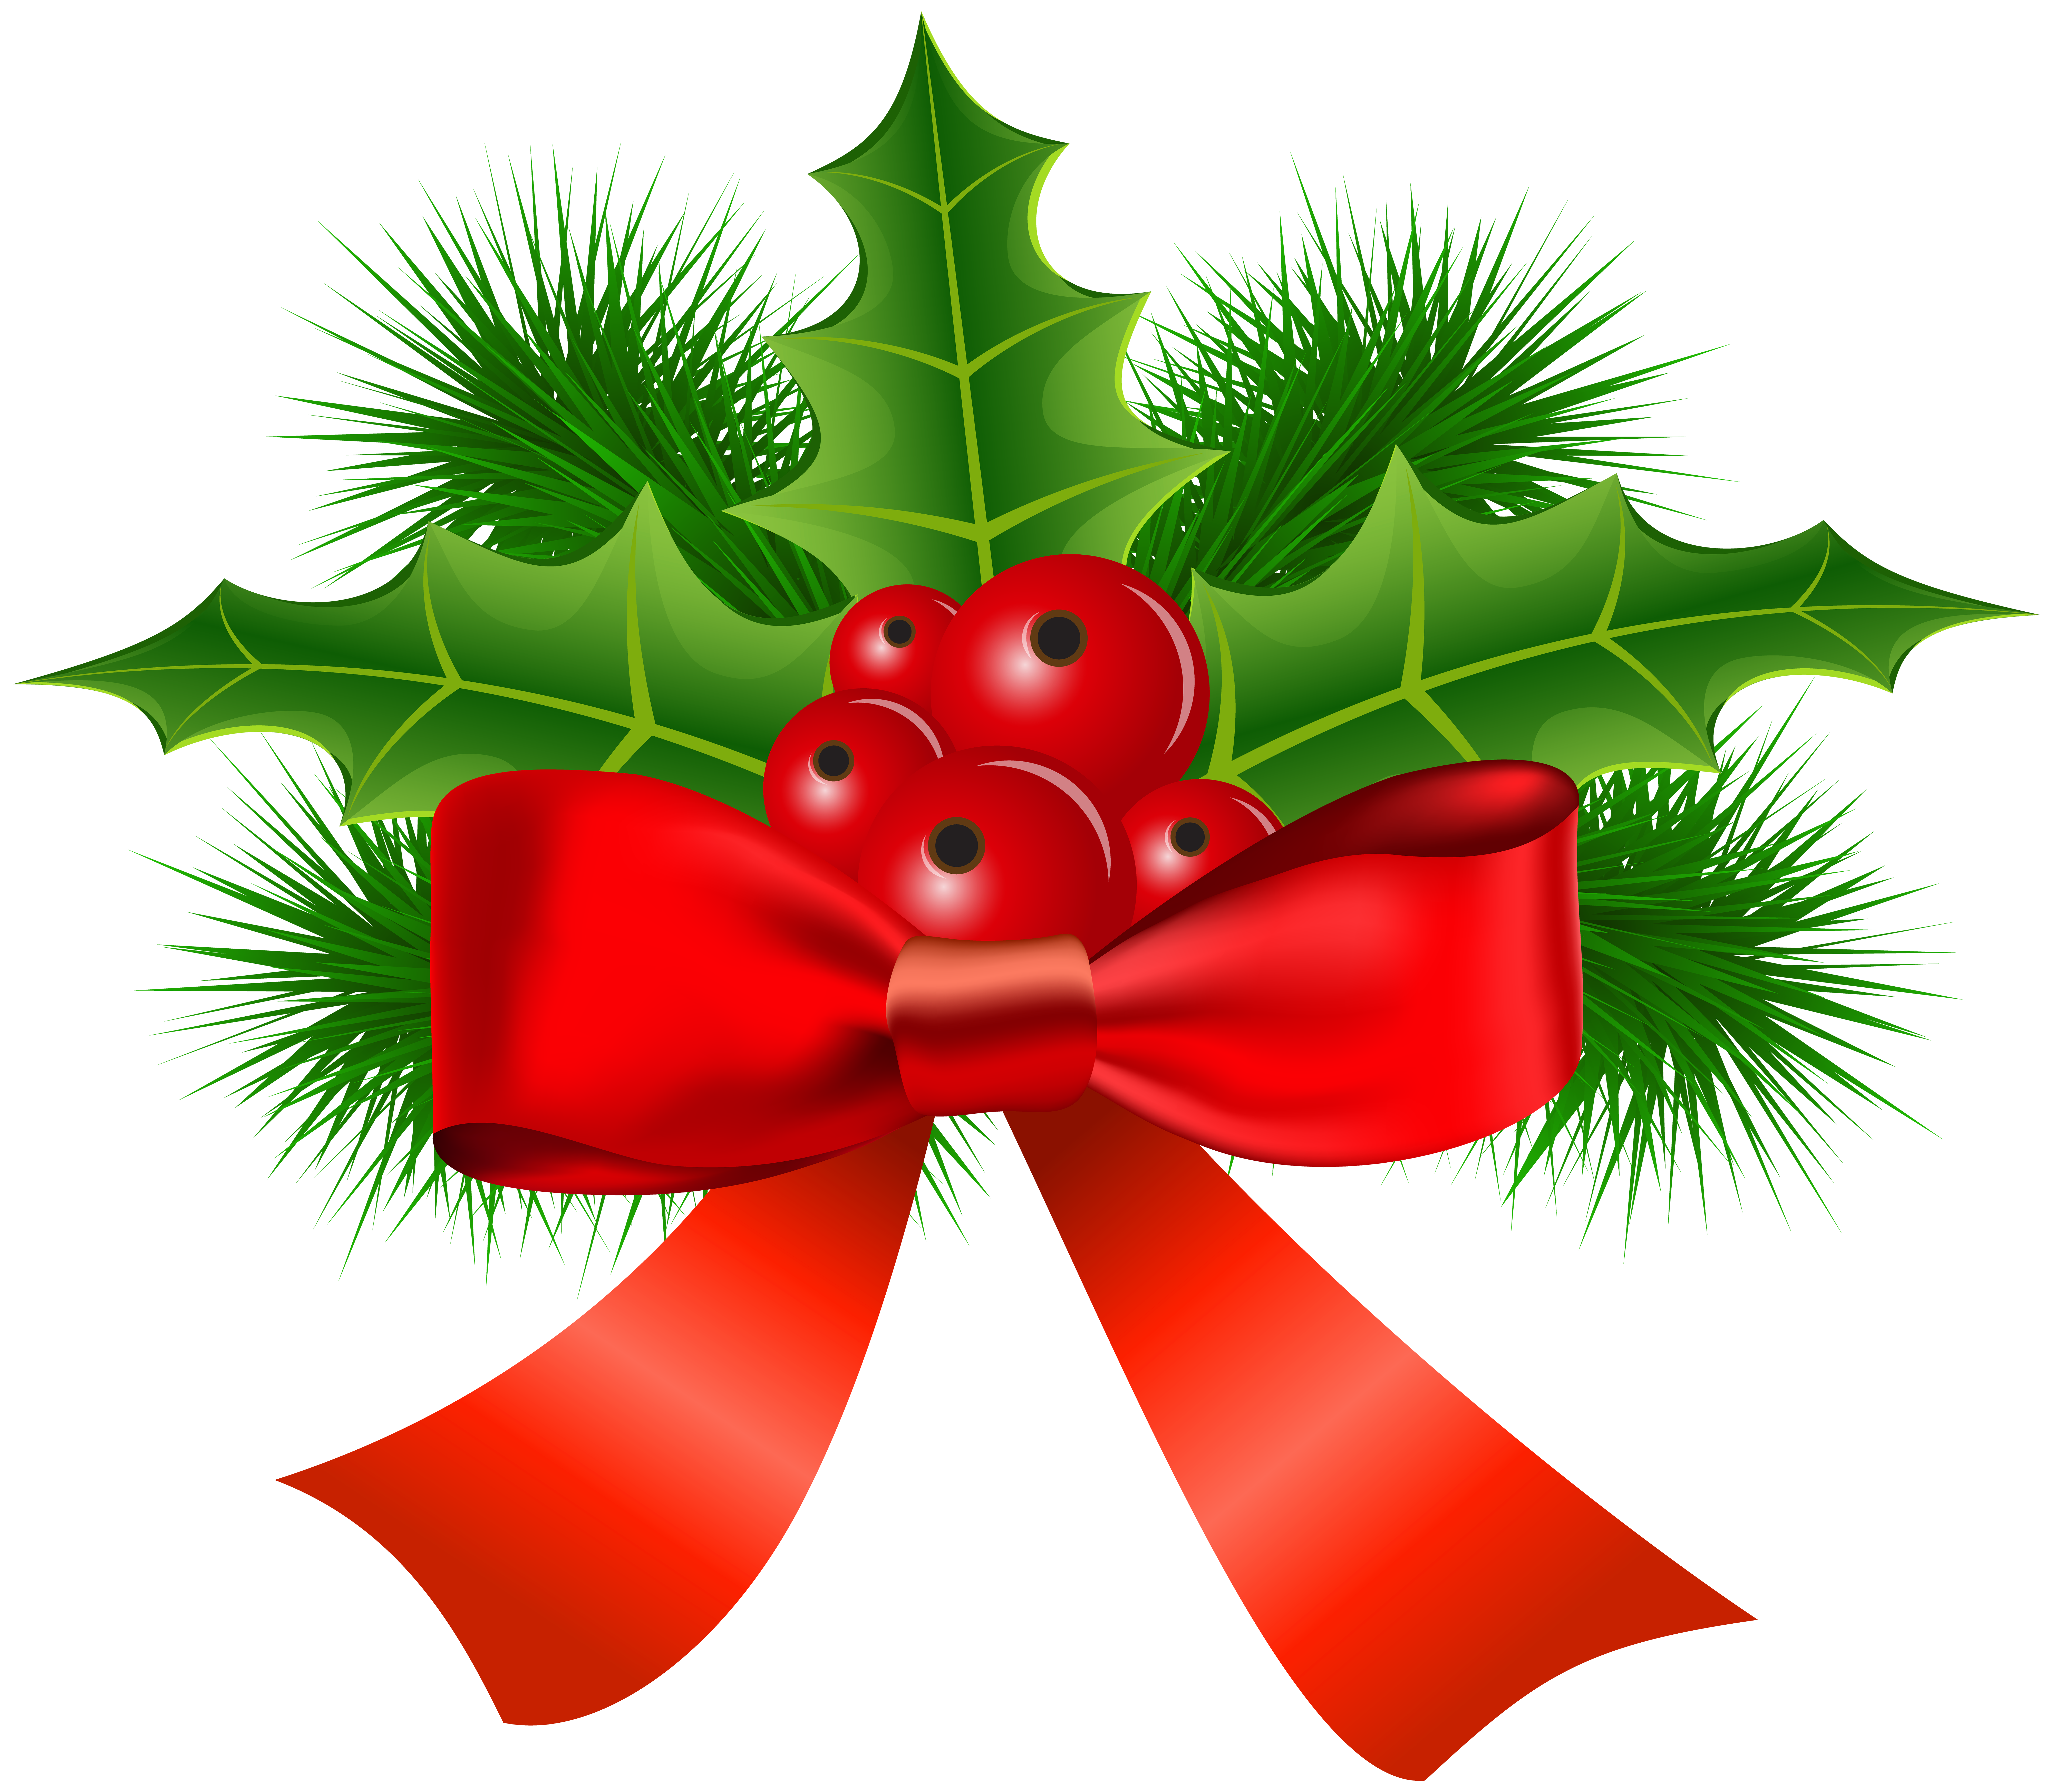 jpg transparent stock Exquisite christmas pictures border. Holly transparent